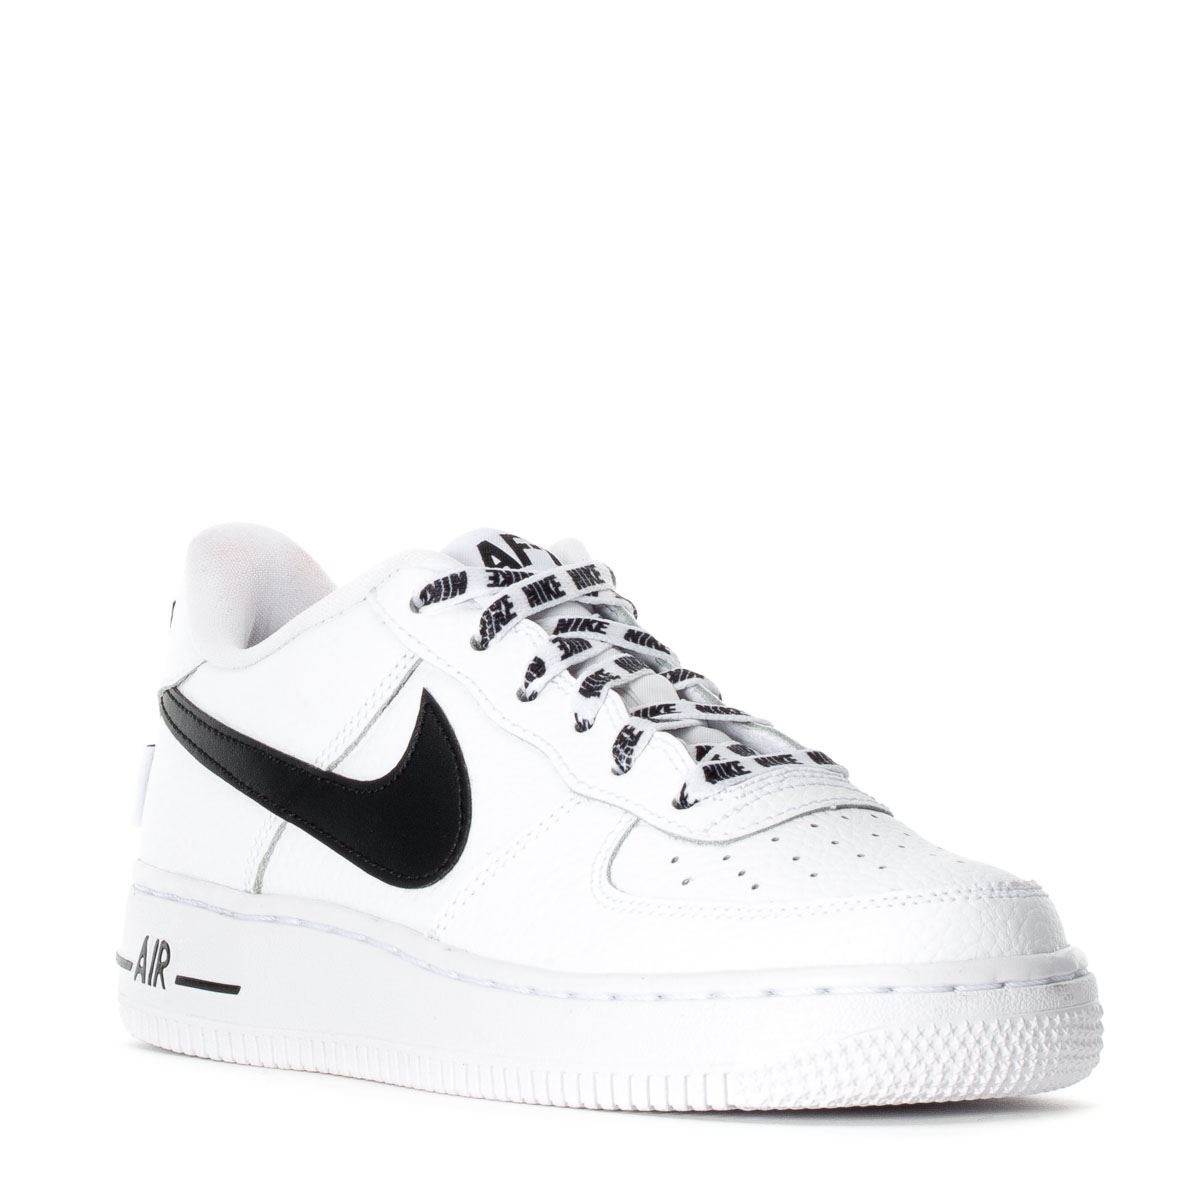 5c9842bec27 tenis nike air force 1 blancos nba. Cargando zoom.